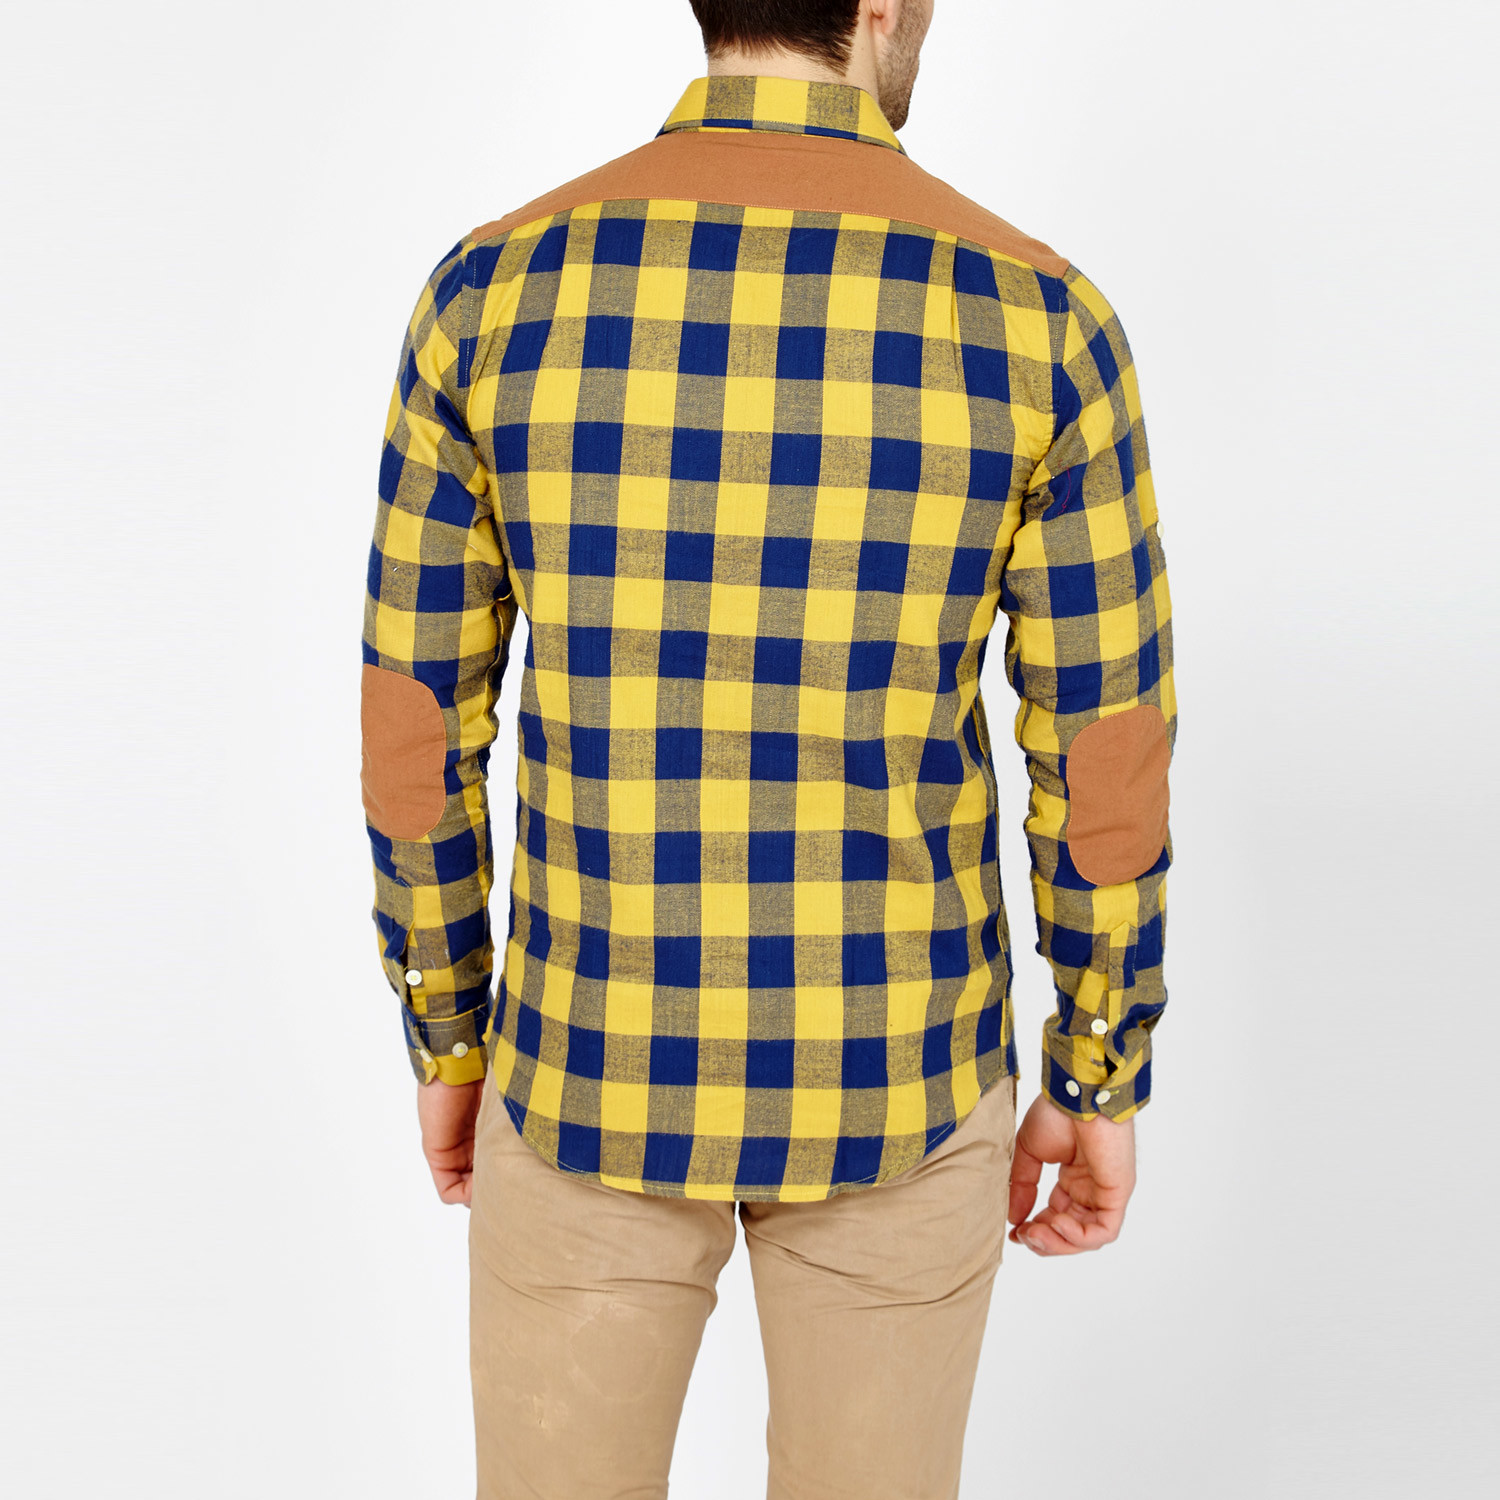 oski button up yellow blue plaid s blanc touch. Black Bedroom Furniture Sets. Home Design Ideas